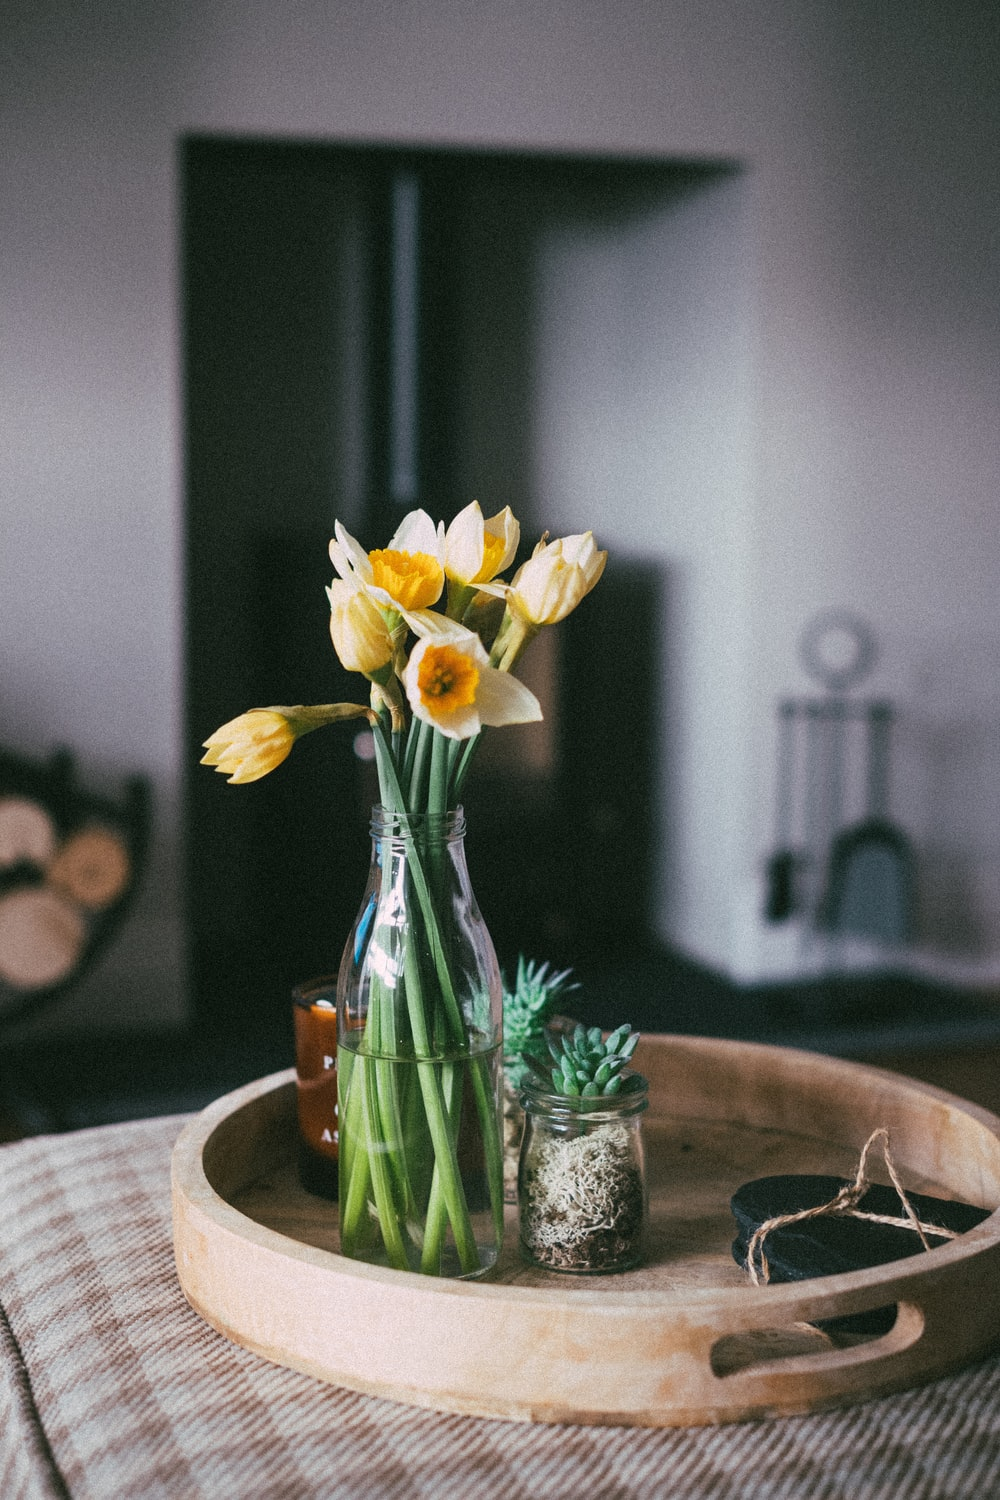 yellow daffodils in clear glass vase on brown wooden table